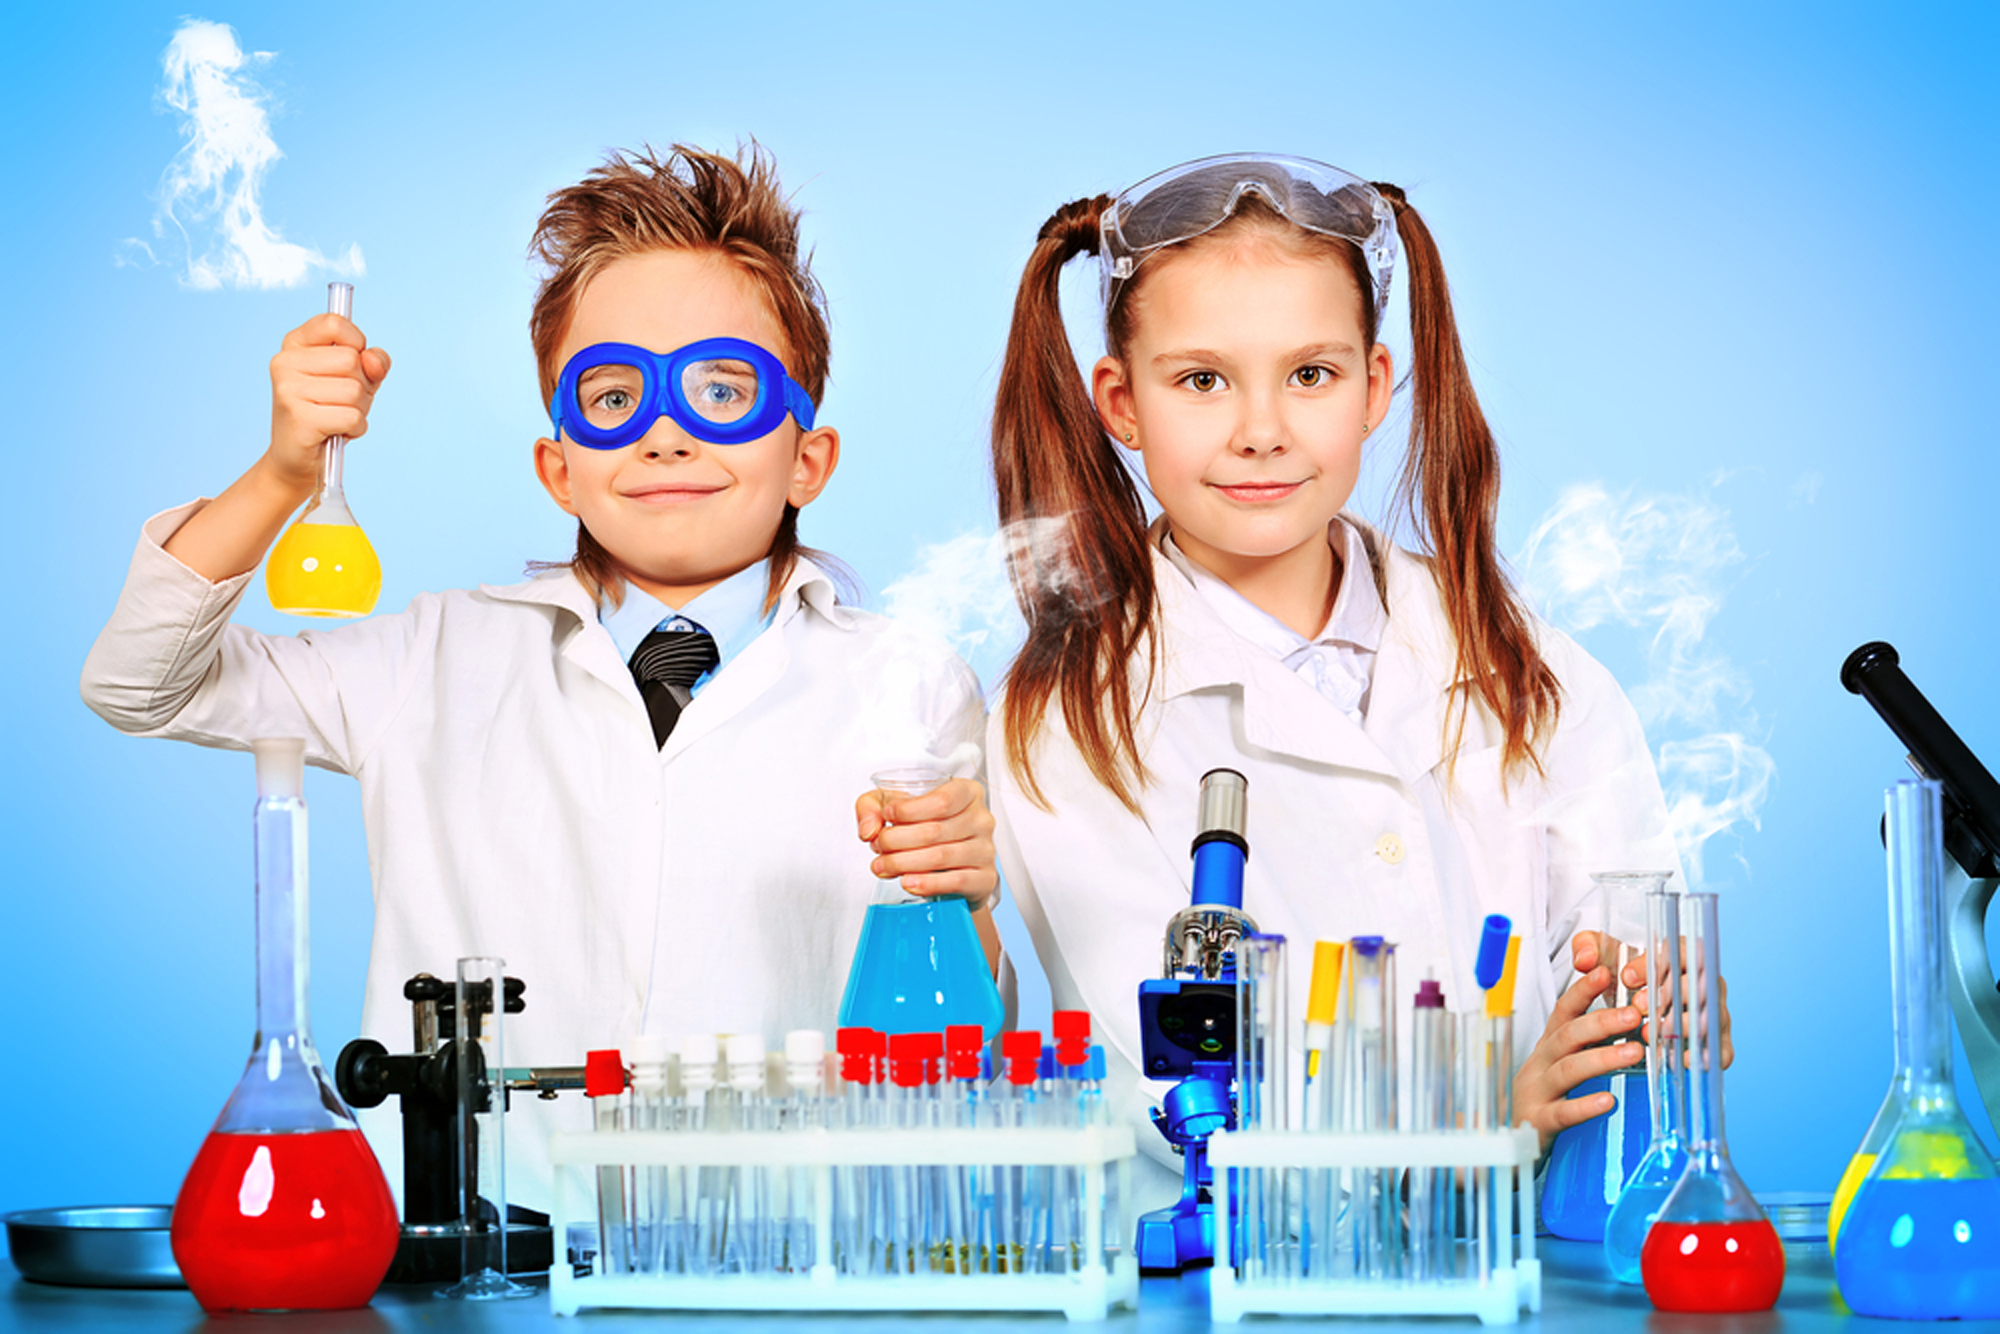 Is there a Magic Formula to succeed at business?